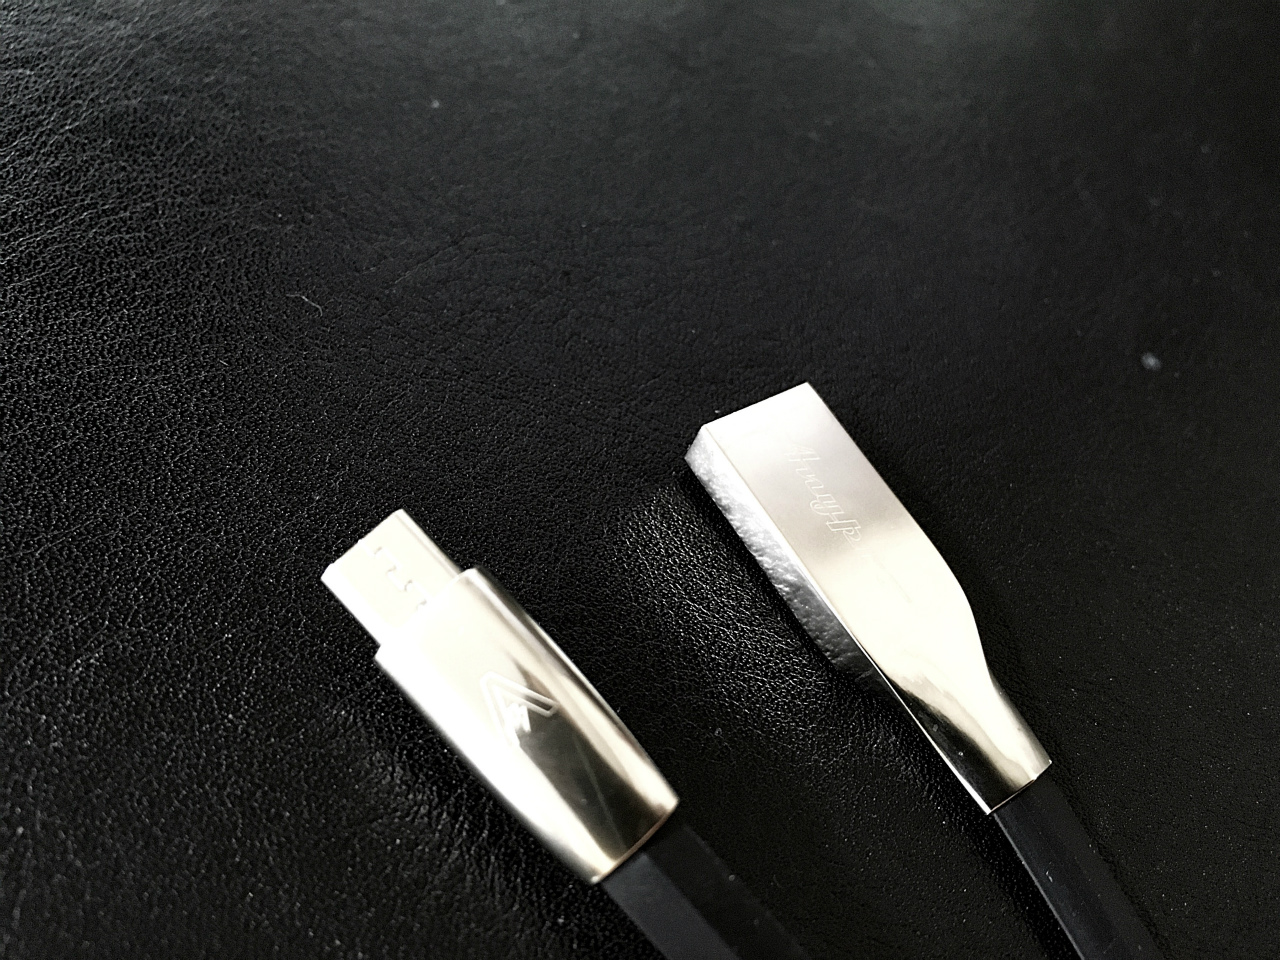 pr-anypro-microusb-cable-05